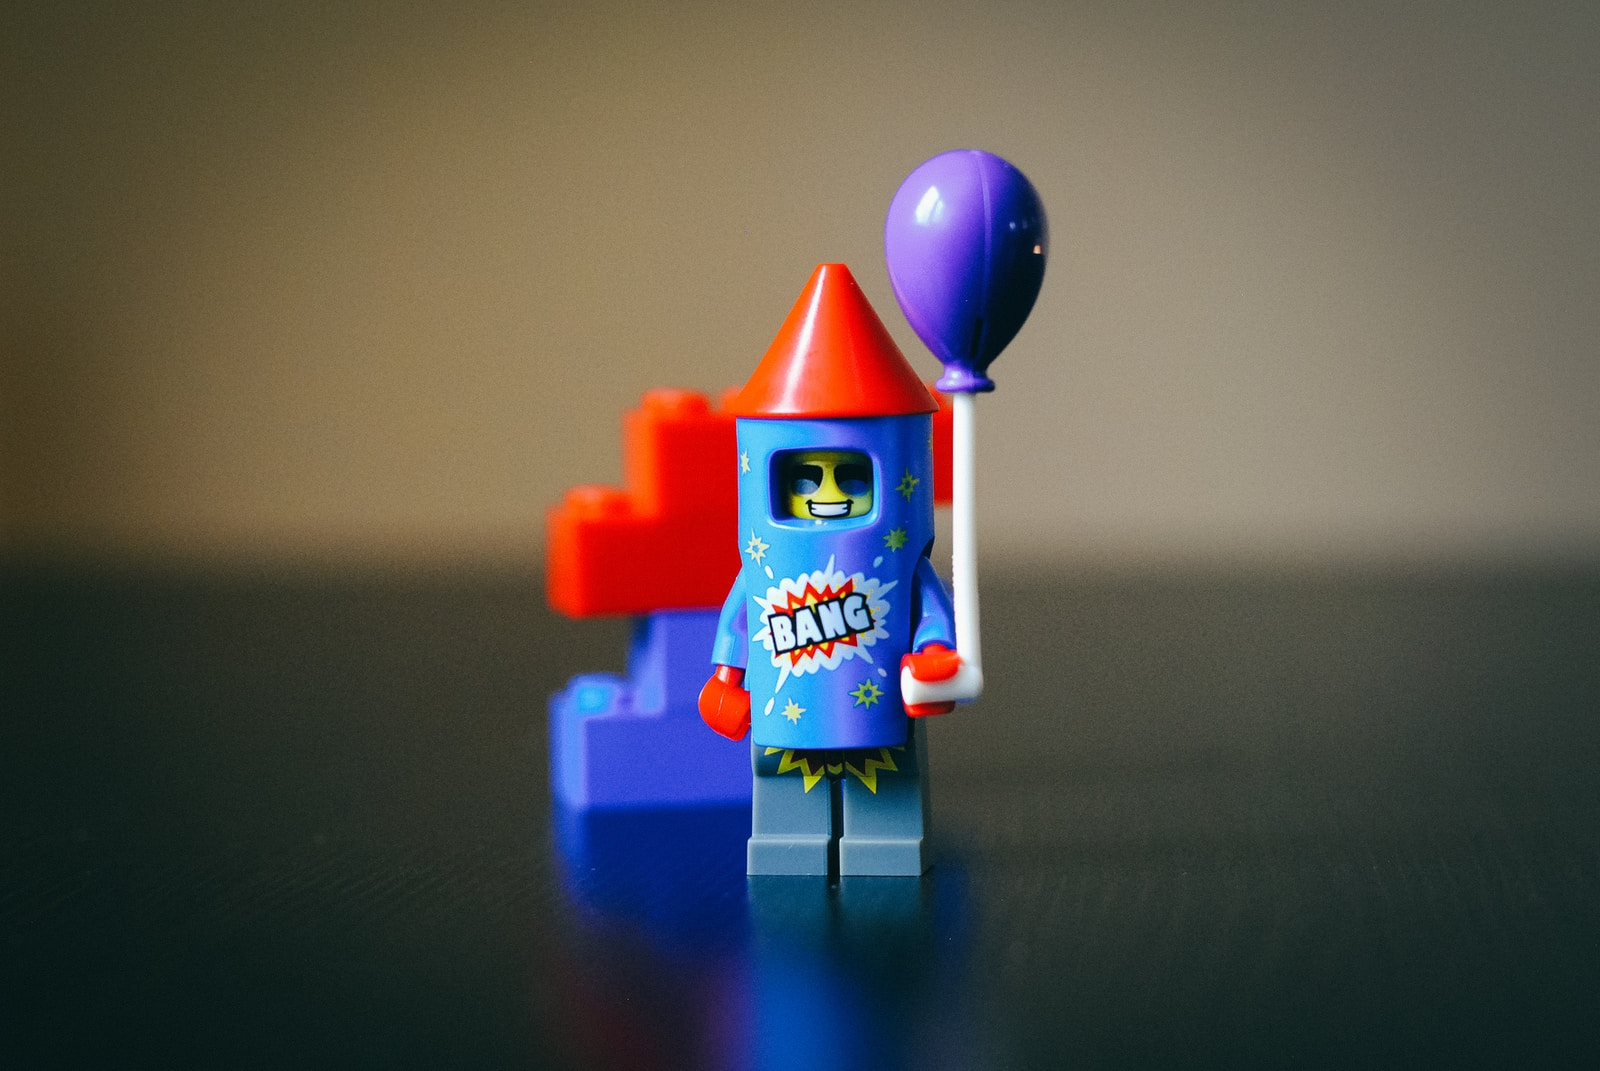 teal, red, and purple LEGO plastic firecracker toy in focus photography